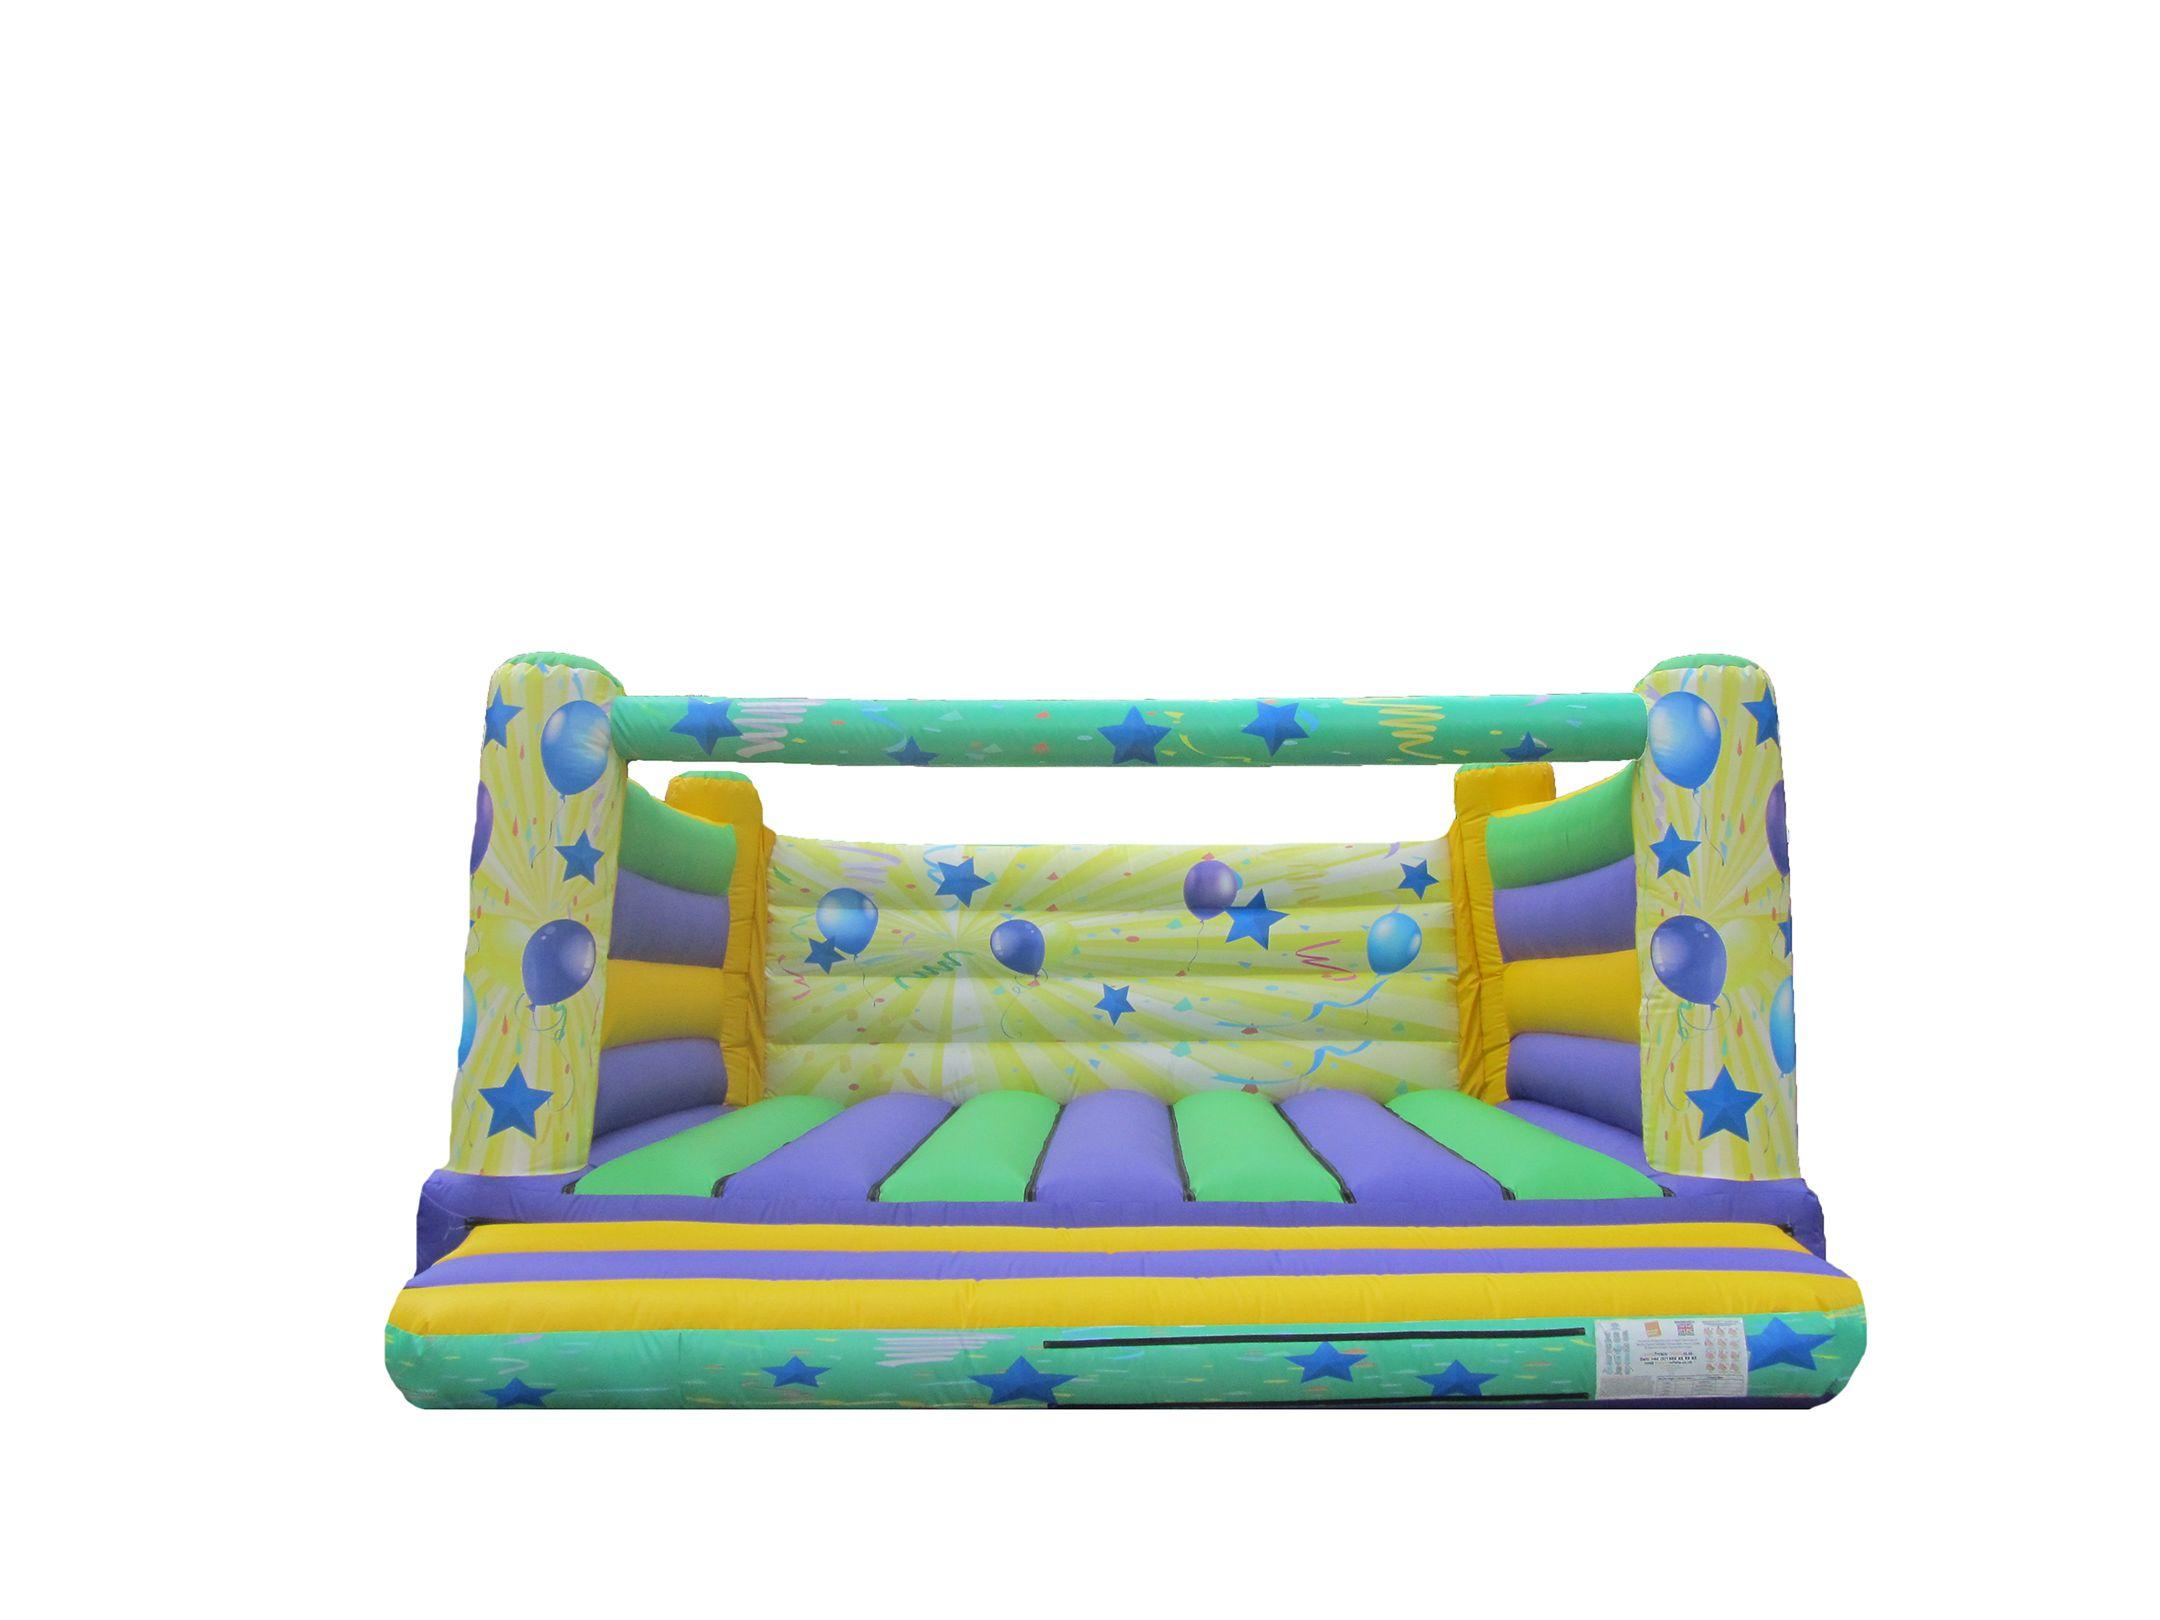 18x18 4post printed party bouncy castle compressor